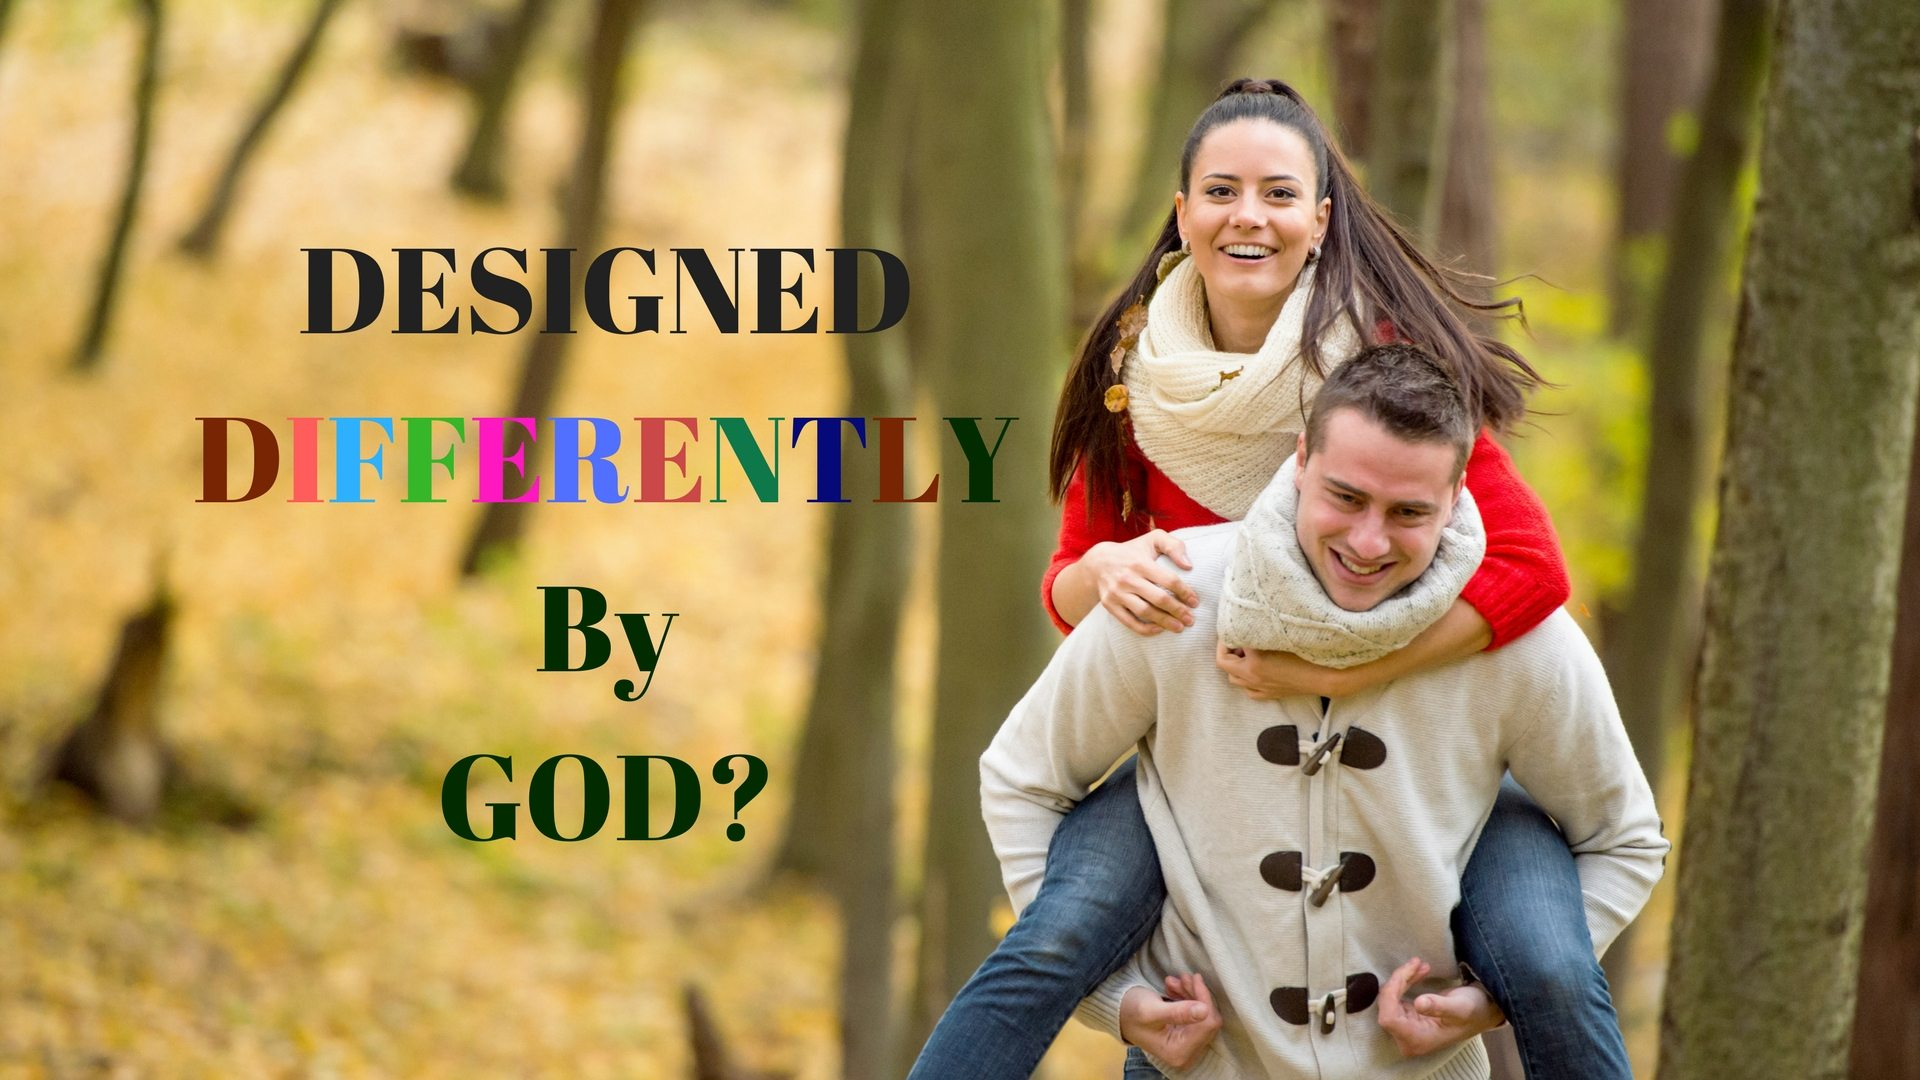 Designed Differently by God - Graphic Stock - Canva